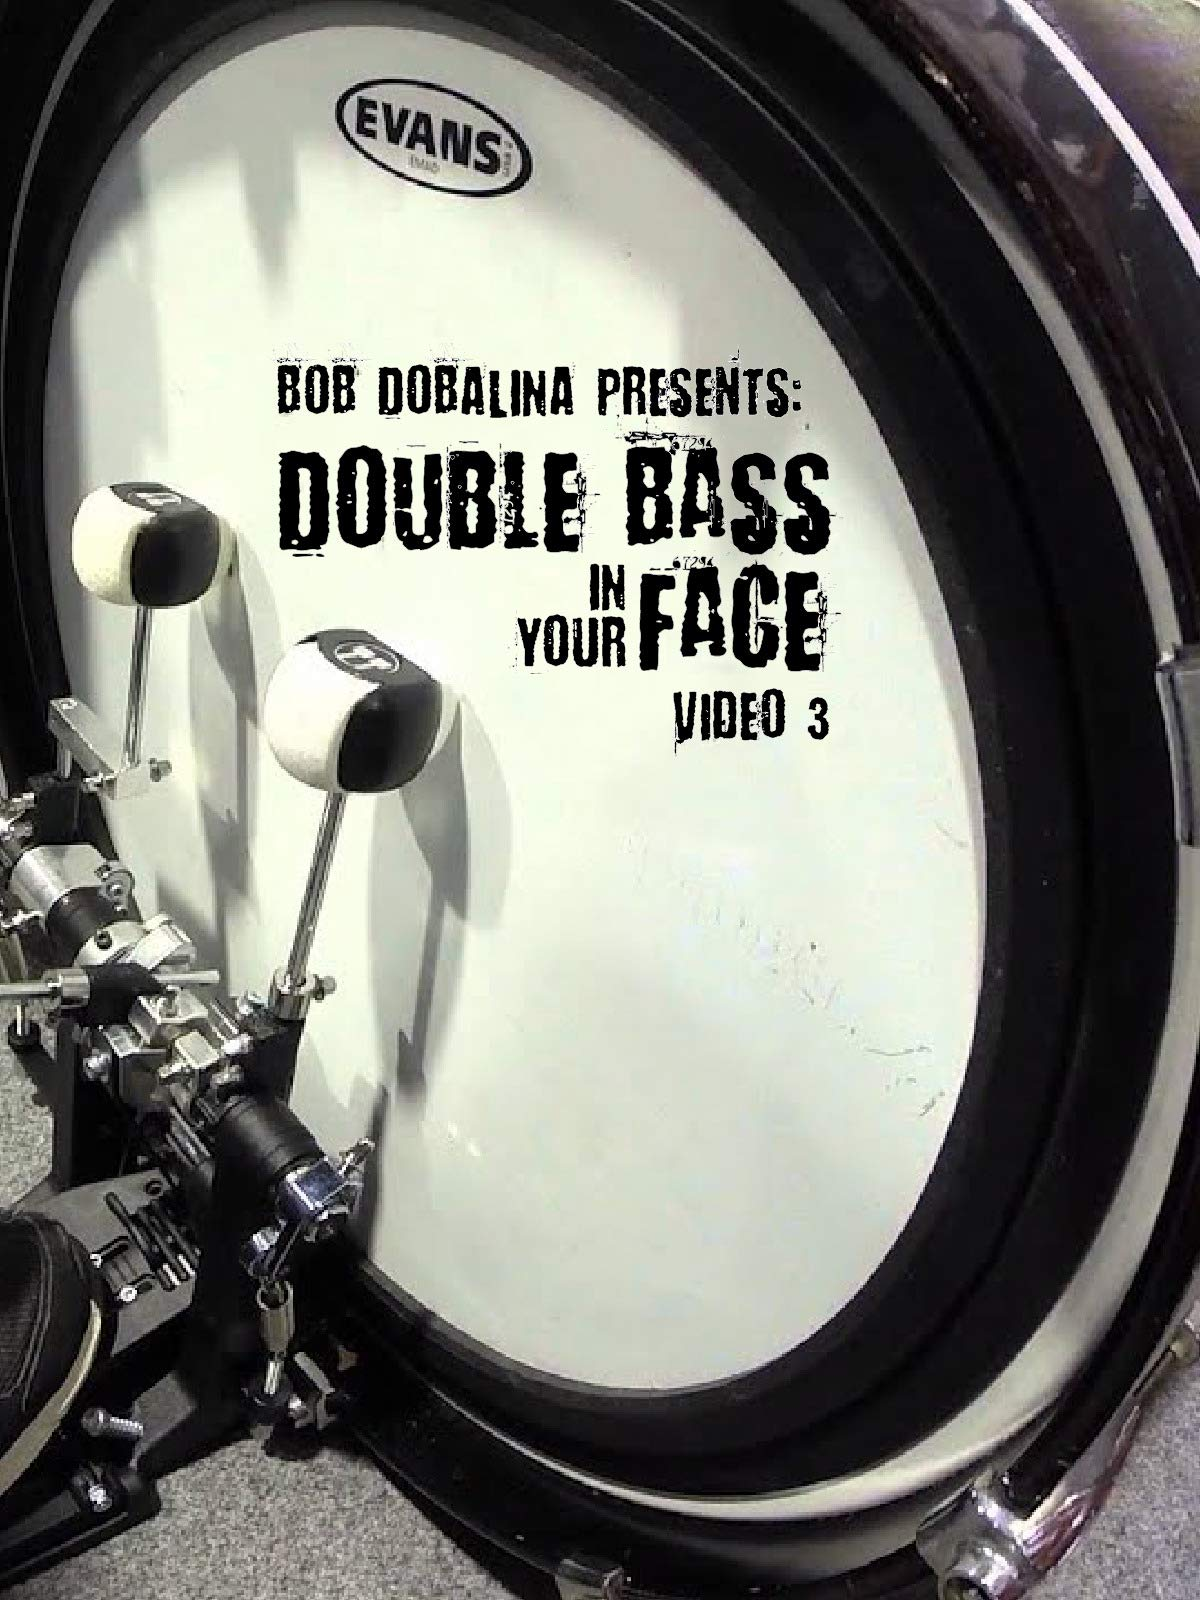 Bob Dobalina Presents: Double Bass In Your Face - Video 3 on Amazon Prime Instant Video UK